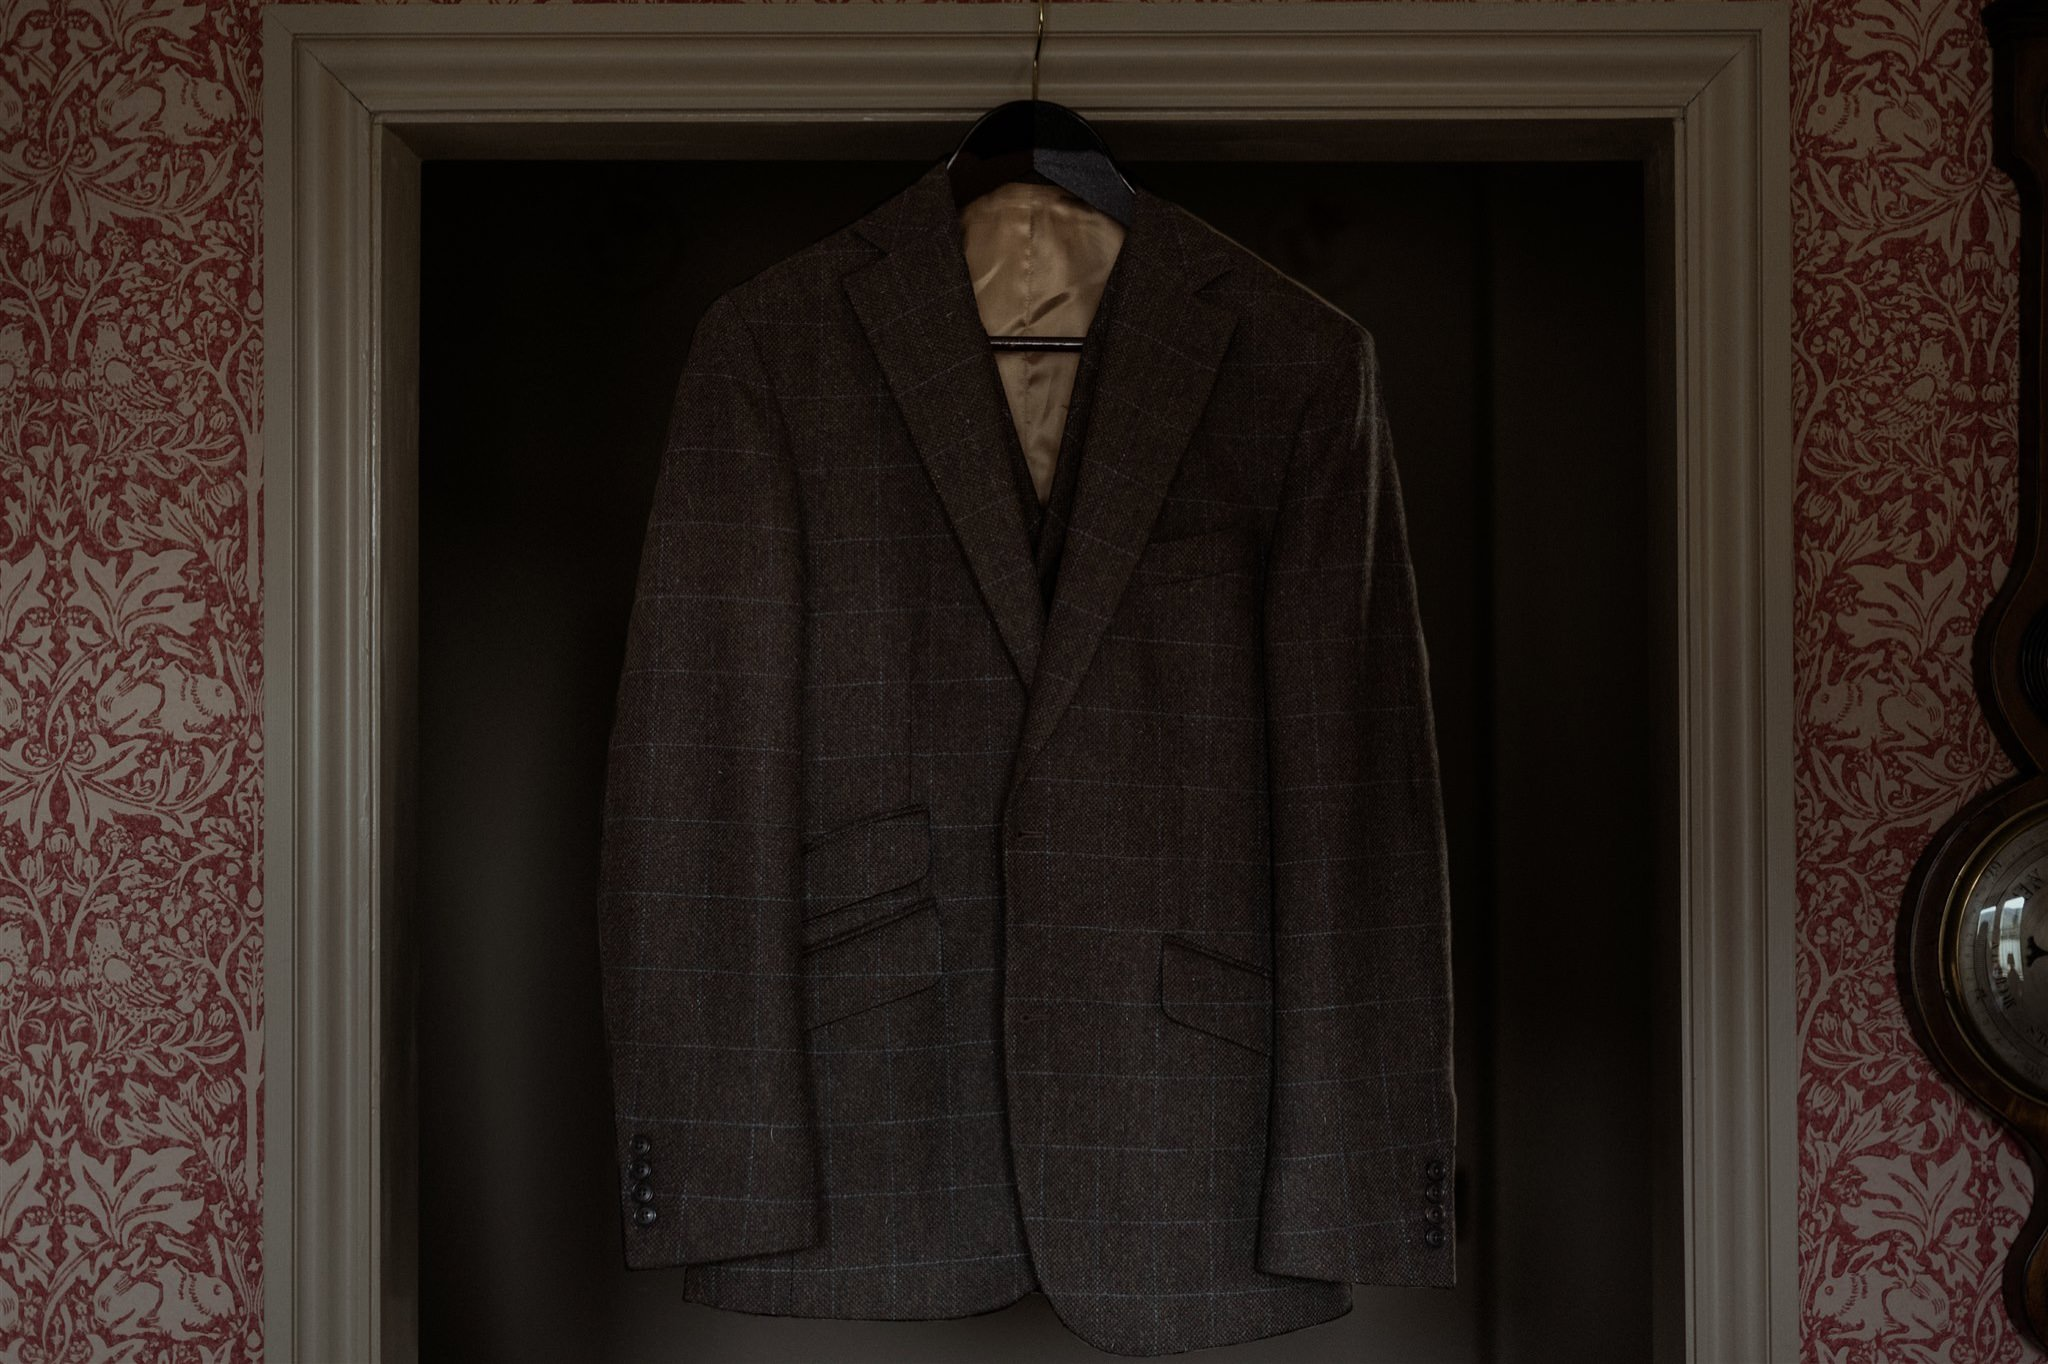 Grooms suit at The Fife Arms in Braemar